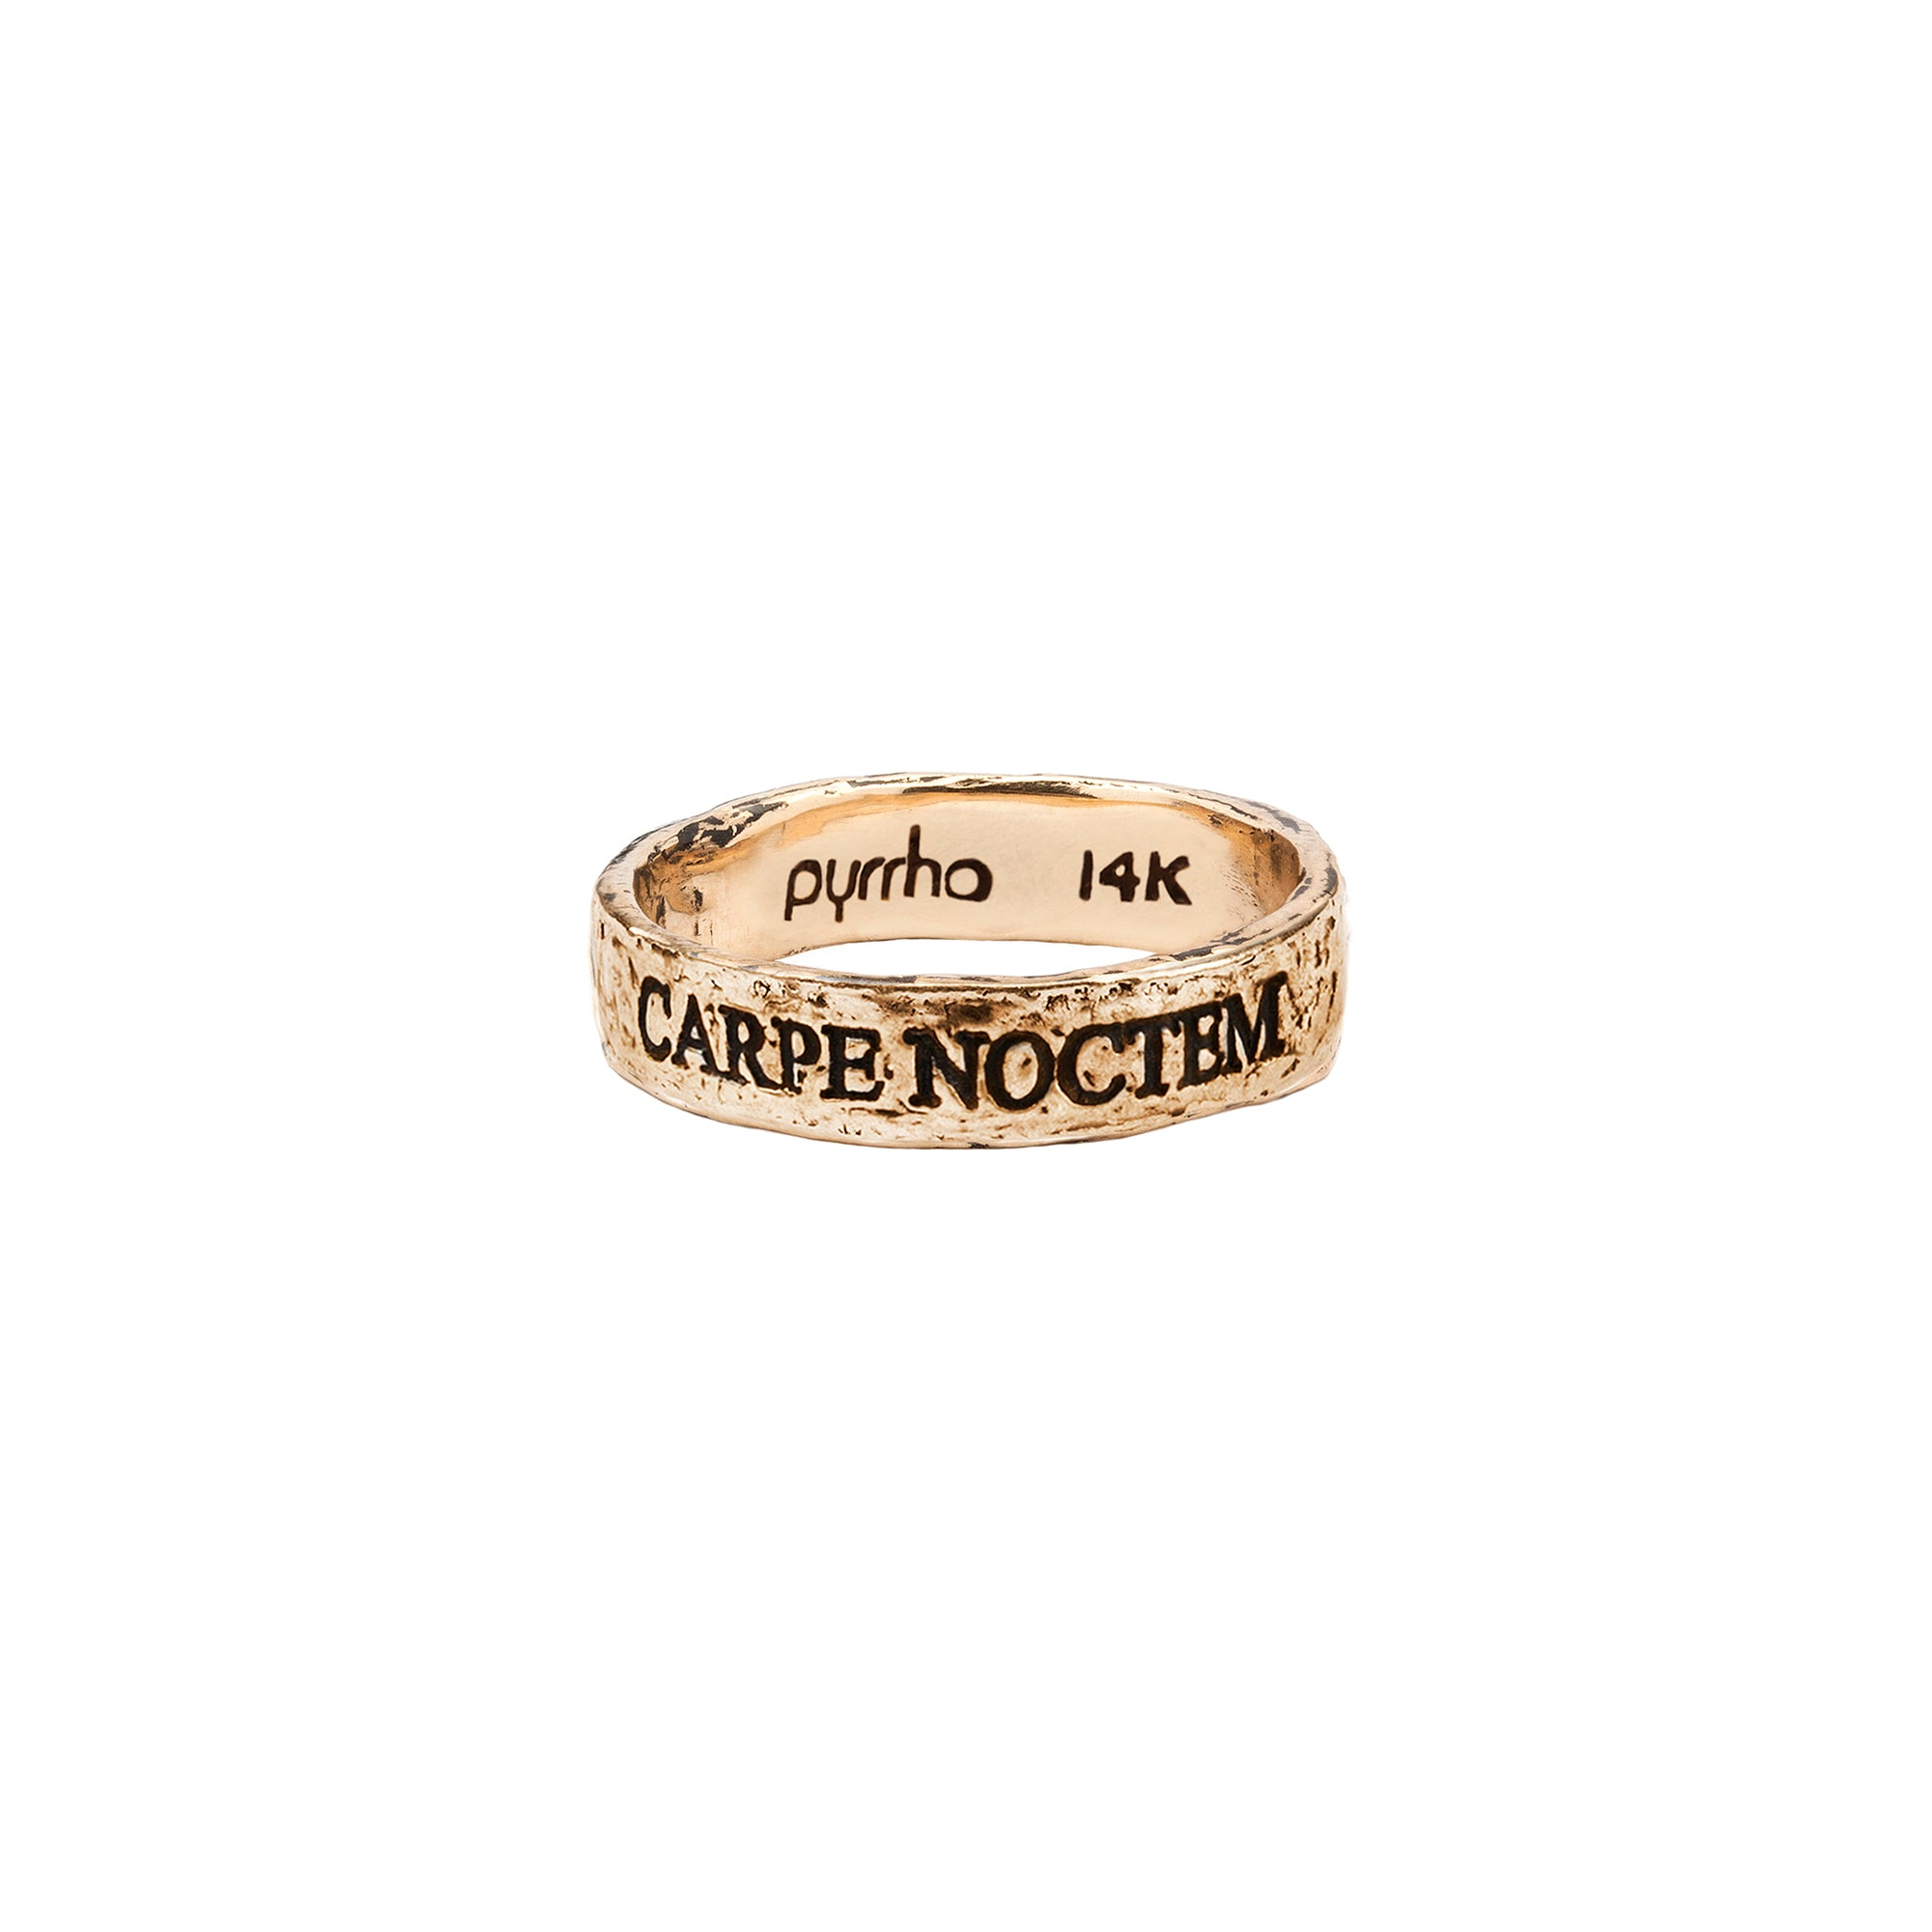 Pyrrha 14k carpe noctem latin motto band ring